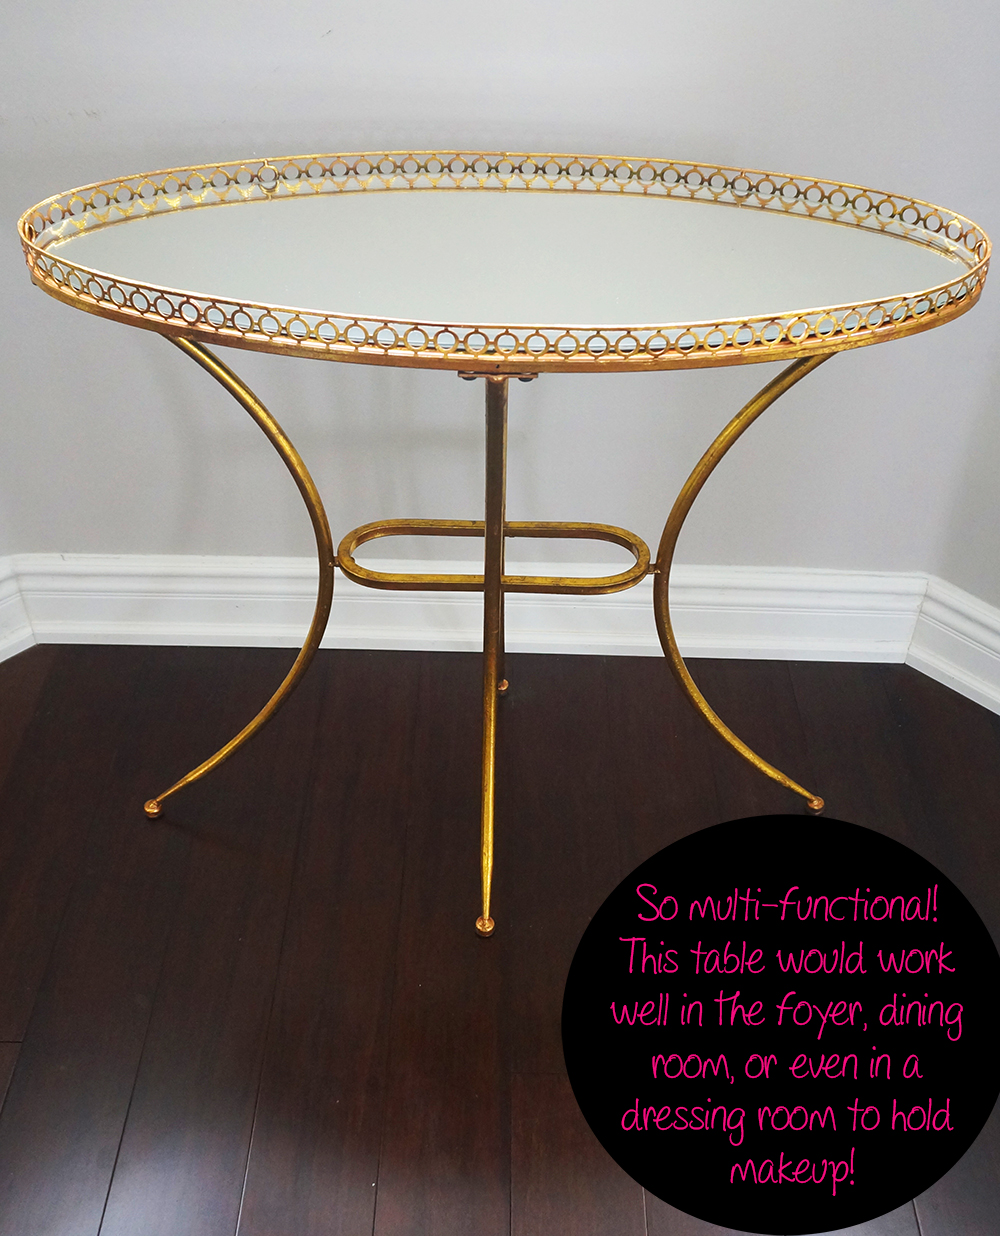 Spring Shopping – My New Gold Mirrored Table From Build Com